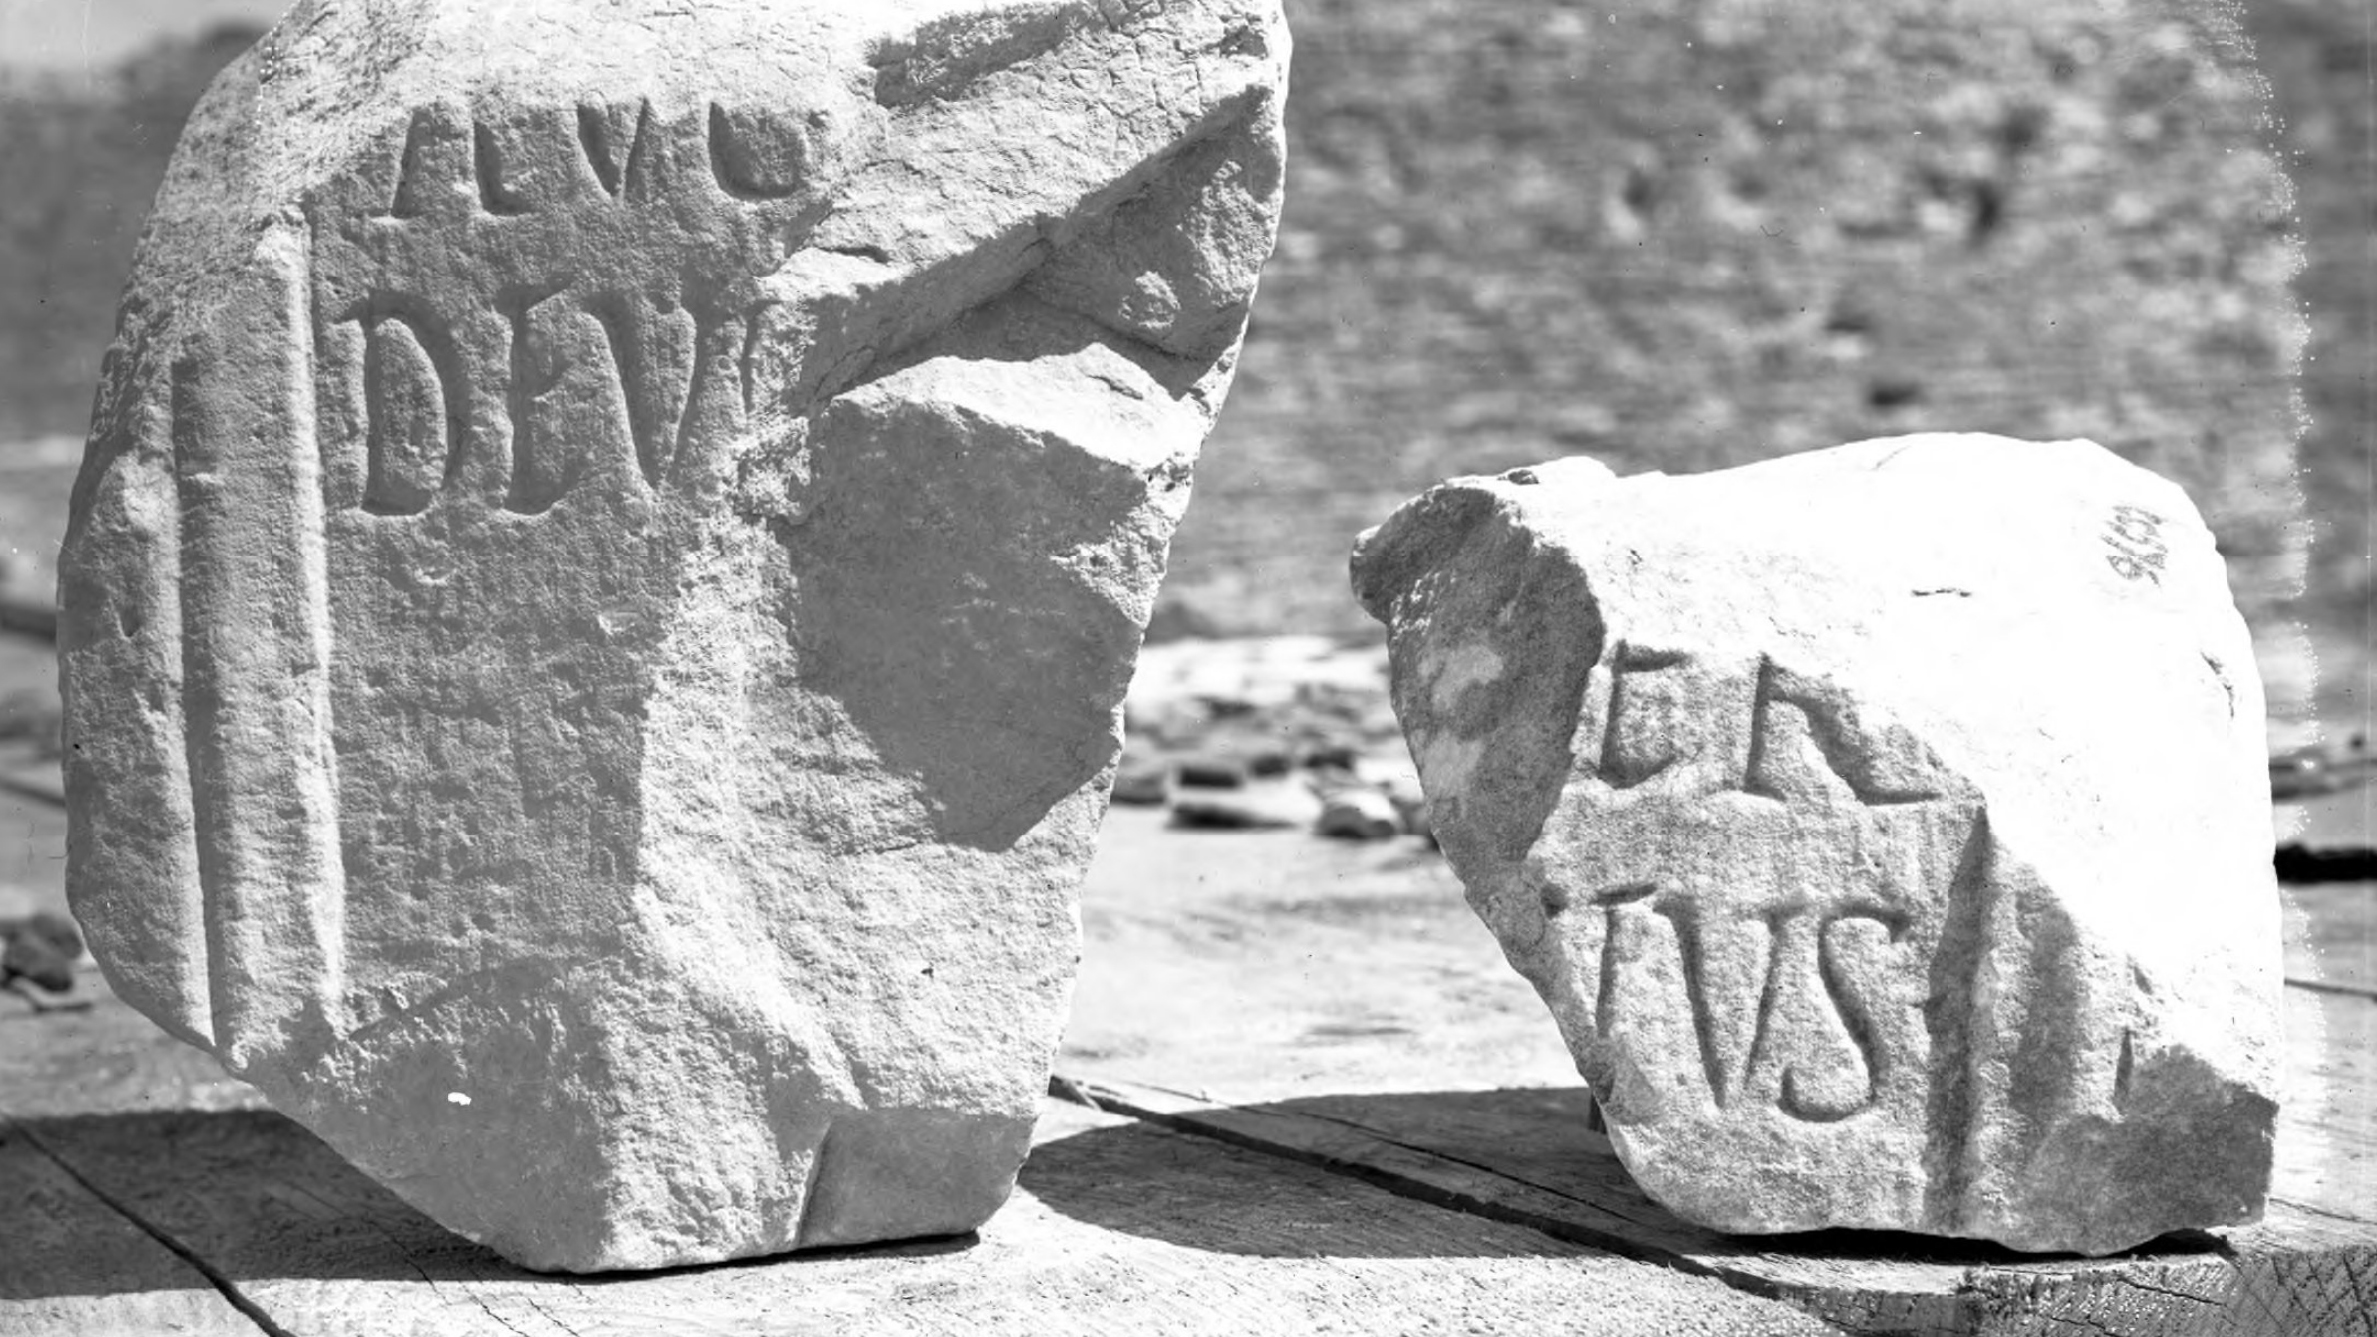 Black and white photograph of two stone fragments with inscriptions